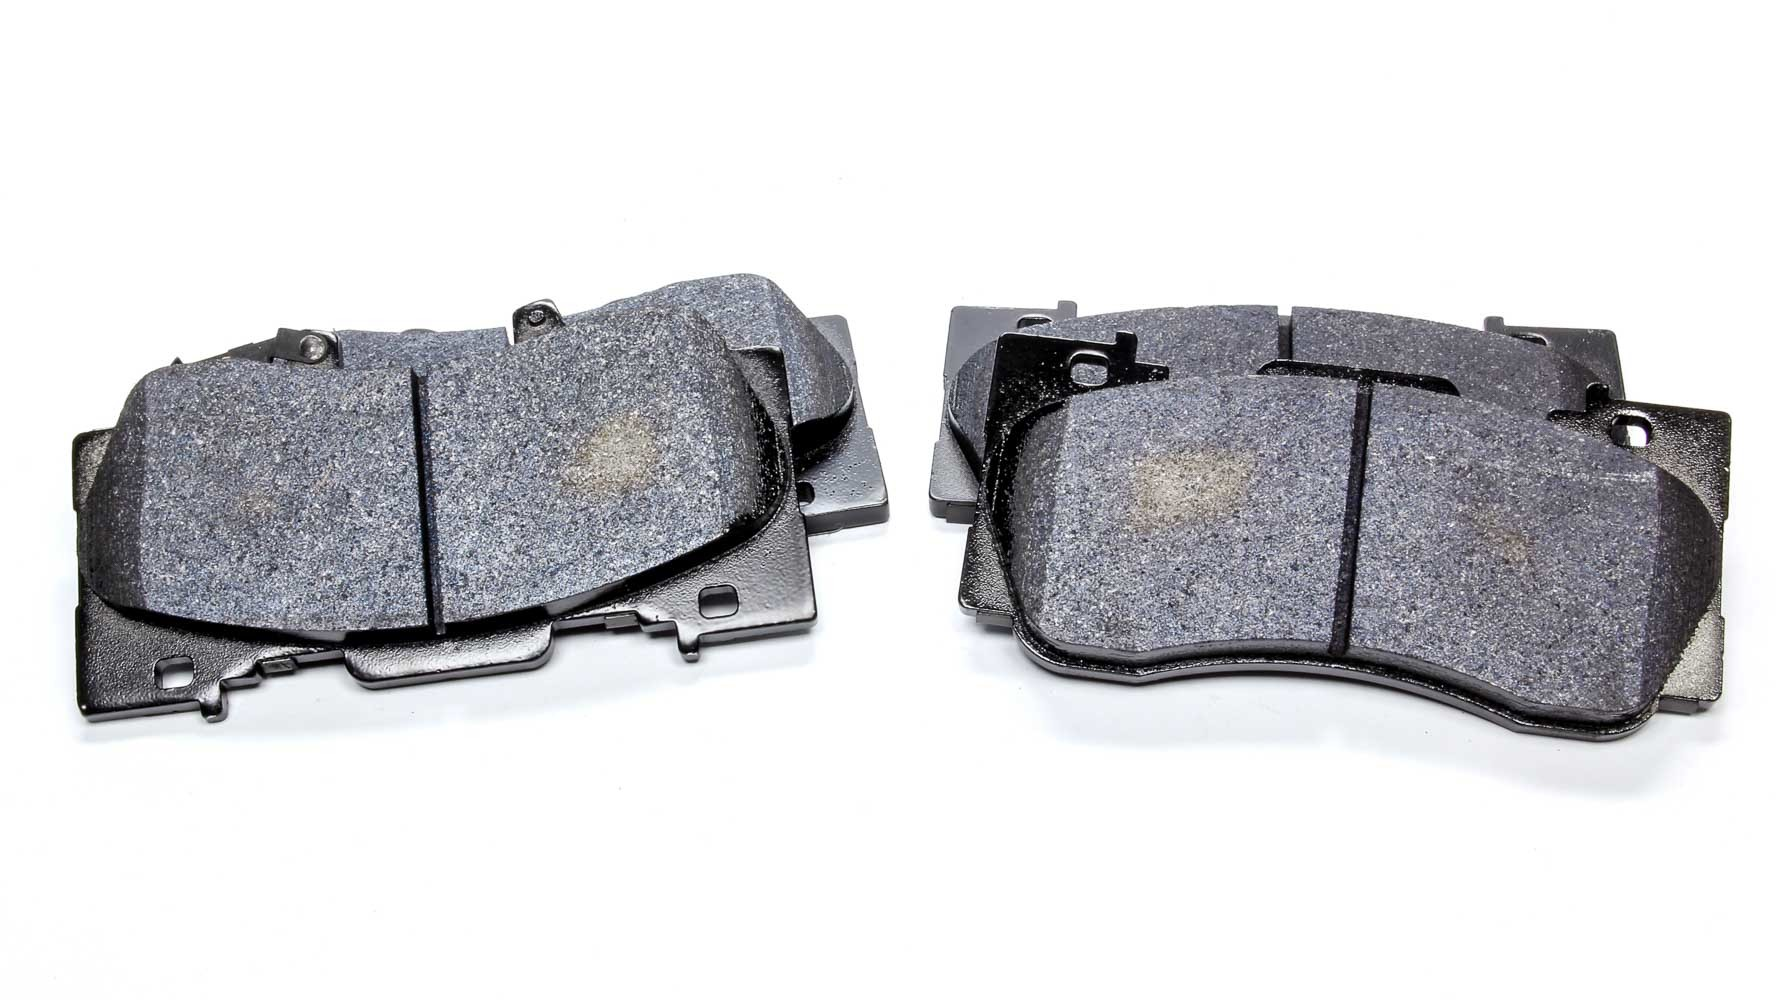 Hawk Brake HB802F.661 Brake Pads, HPS Performance, Street Compound, High Friction, Front, Ford Mustang 2015-17, Set of 4